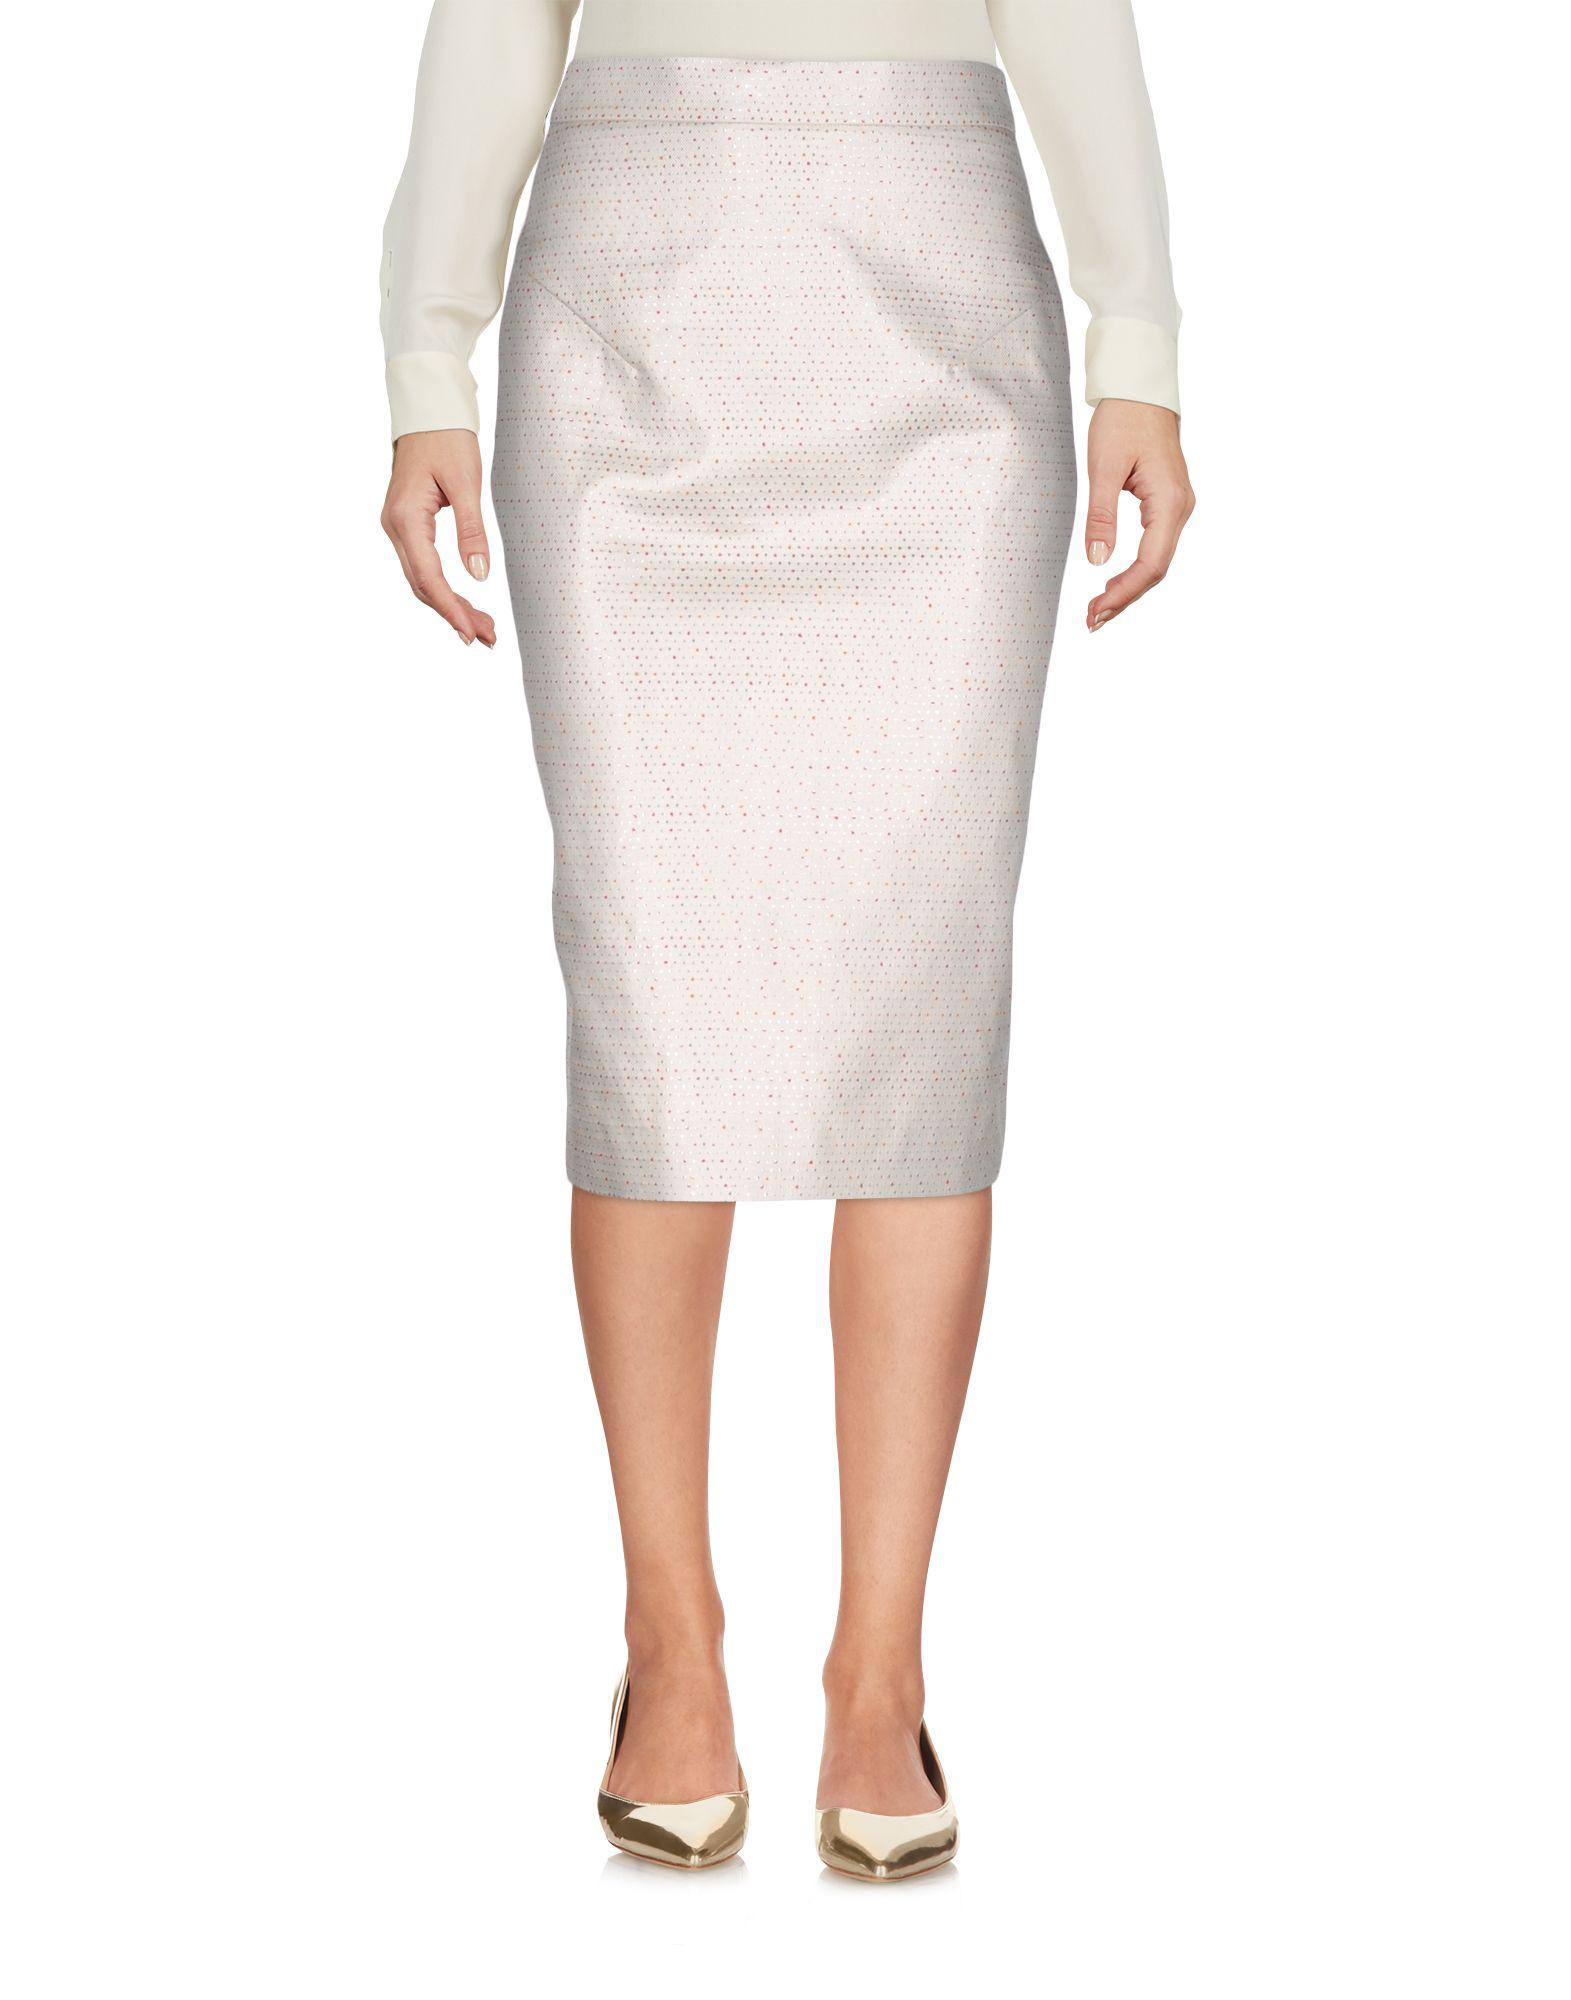 Vivienne Westwood Red Label Knee-Length Pencil Skirt Free Shipping New Outlet Supply GrNpE21